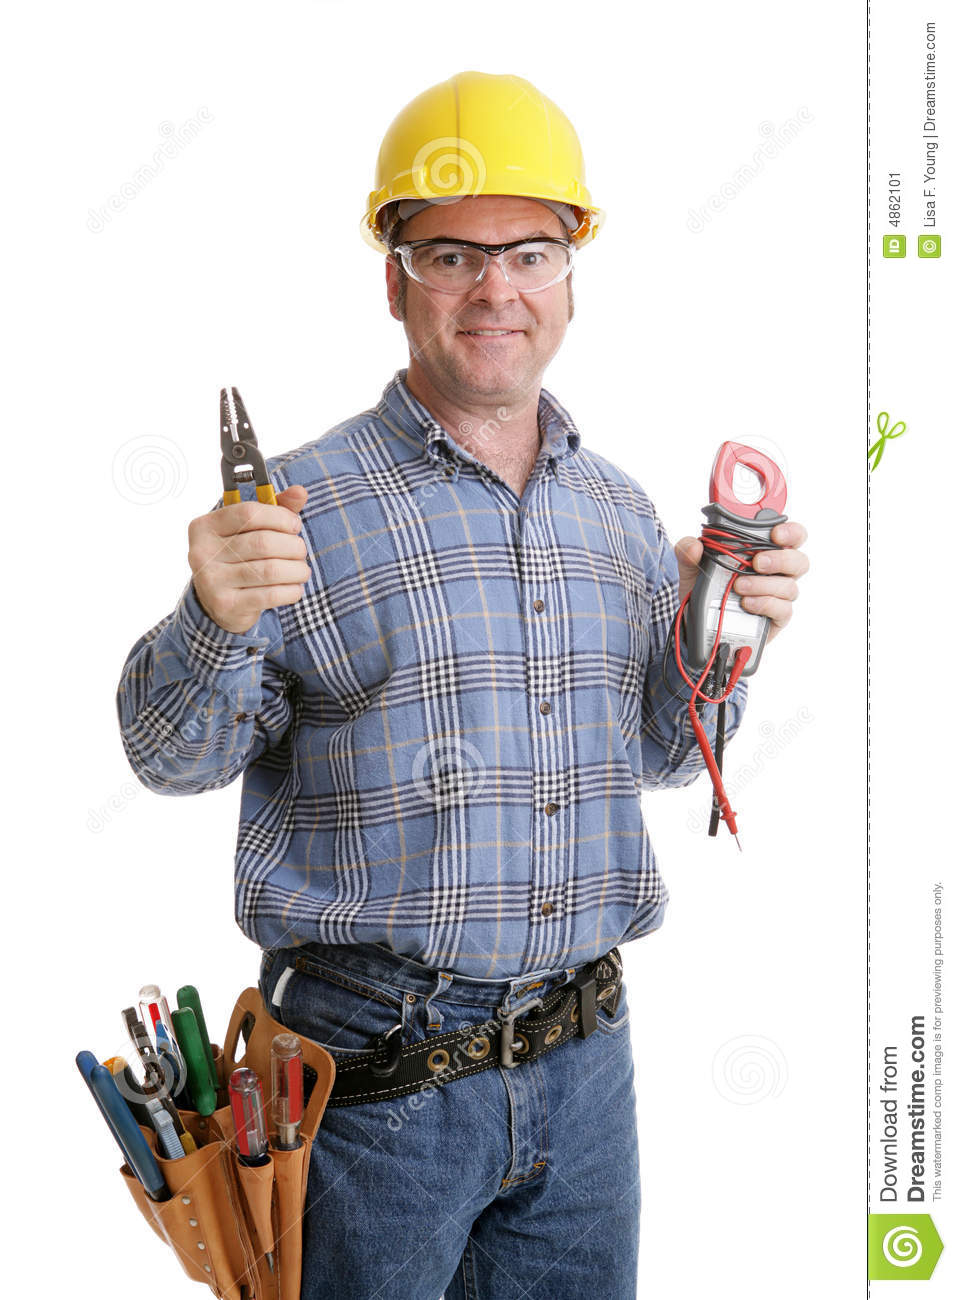 Electricians Tools Stock Image - Image: 4862101